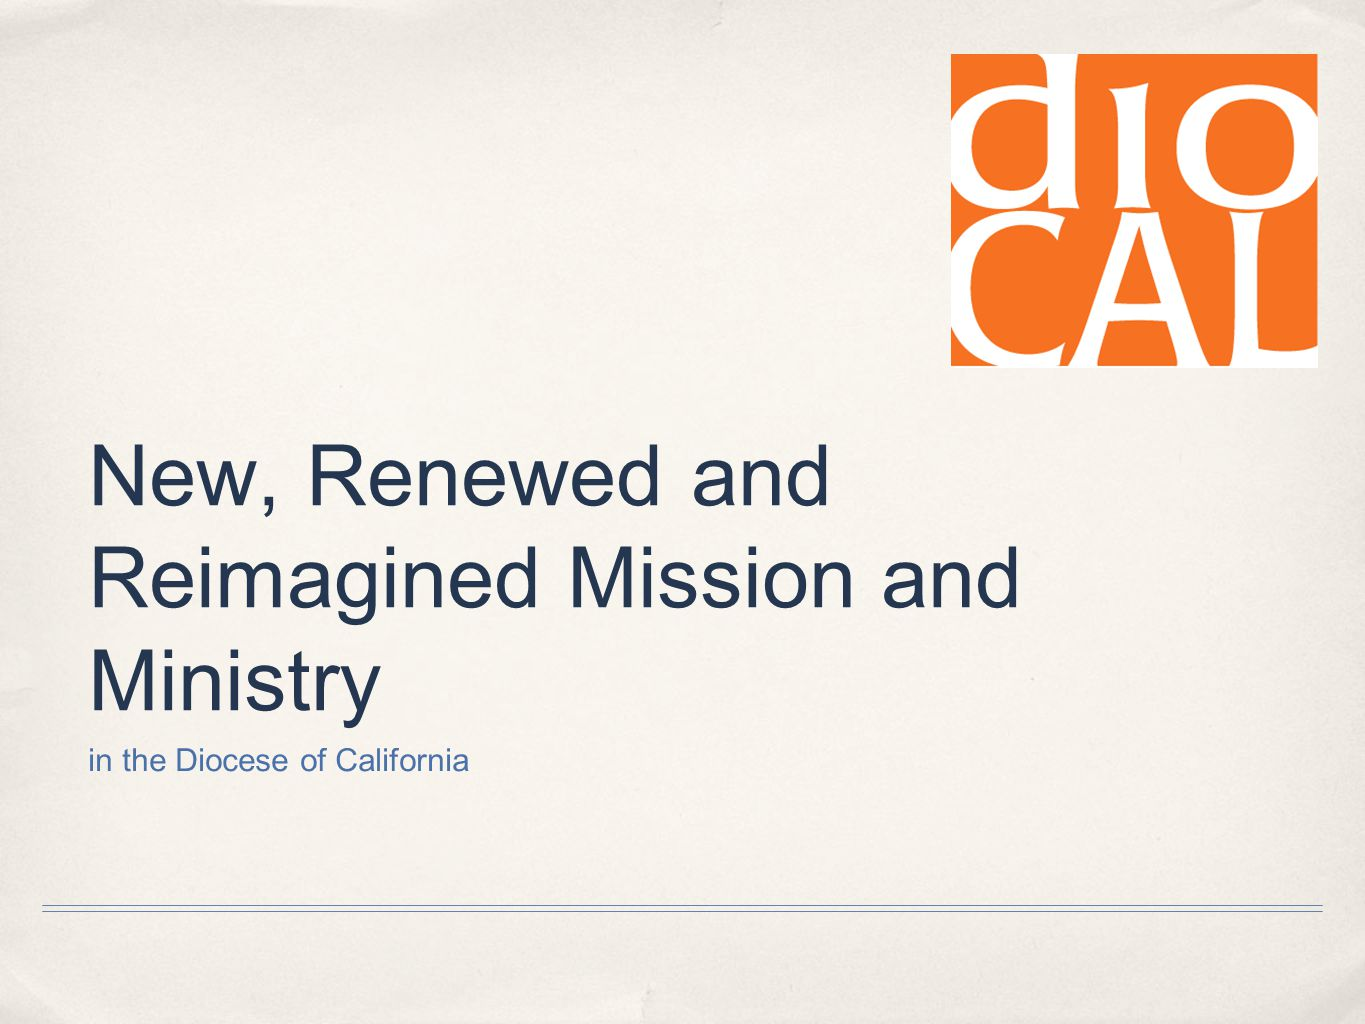 New, Renewed and Reimagined Mission and Ministry in the Diocese of California